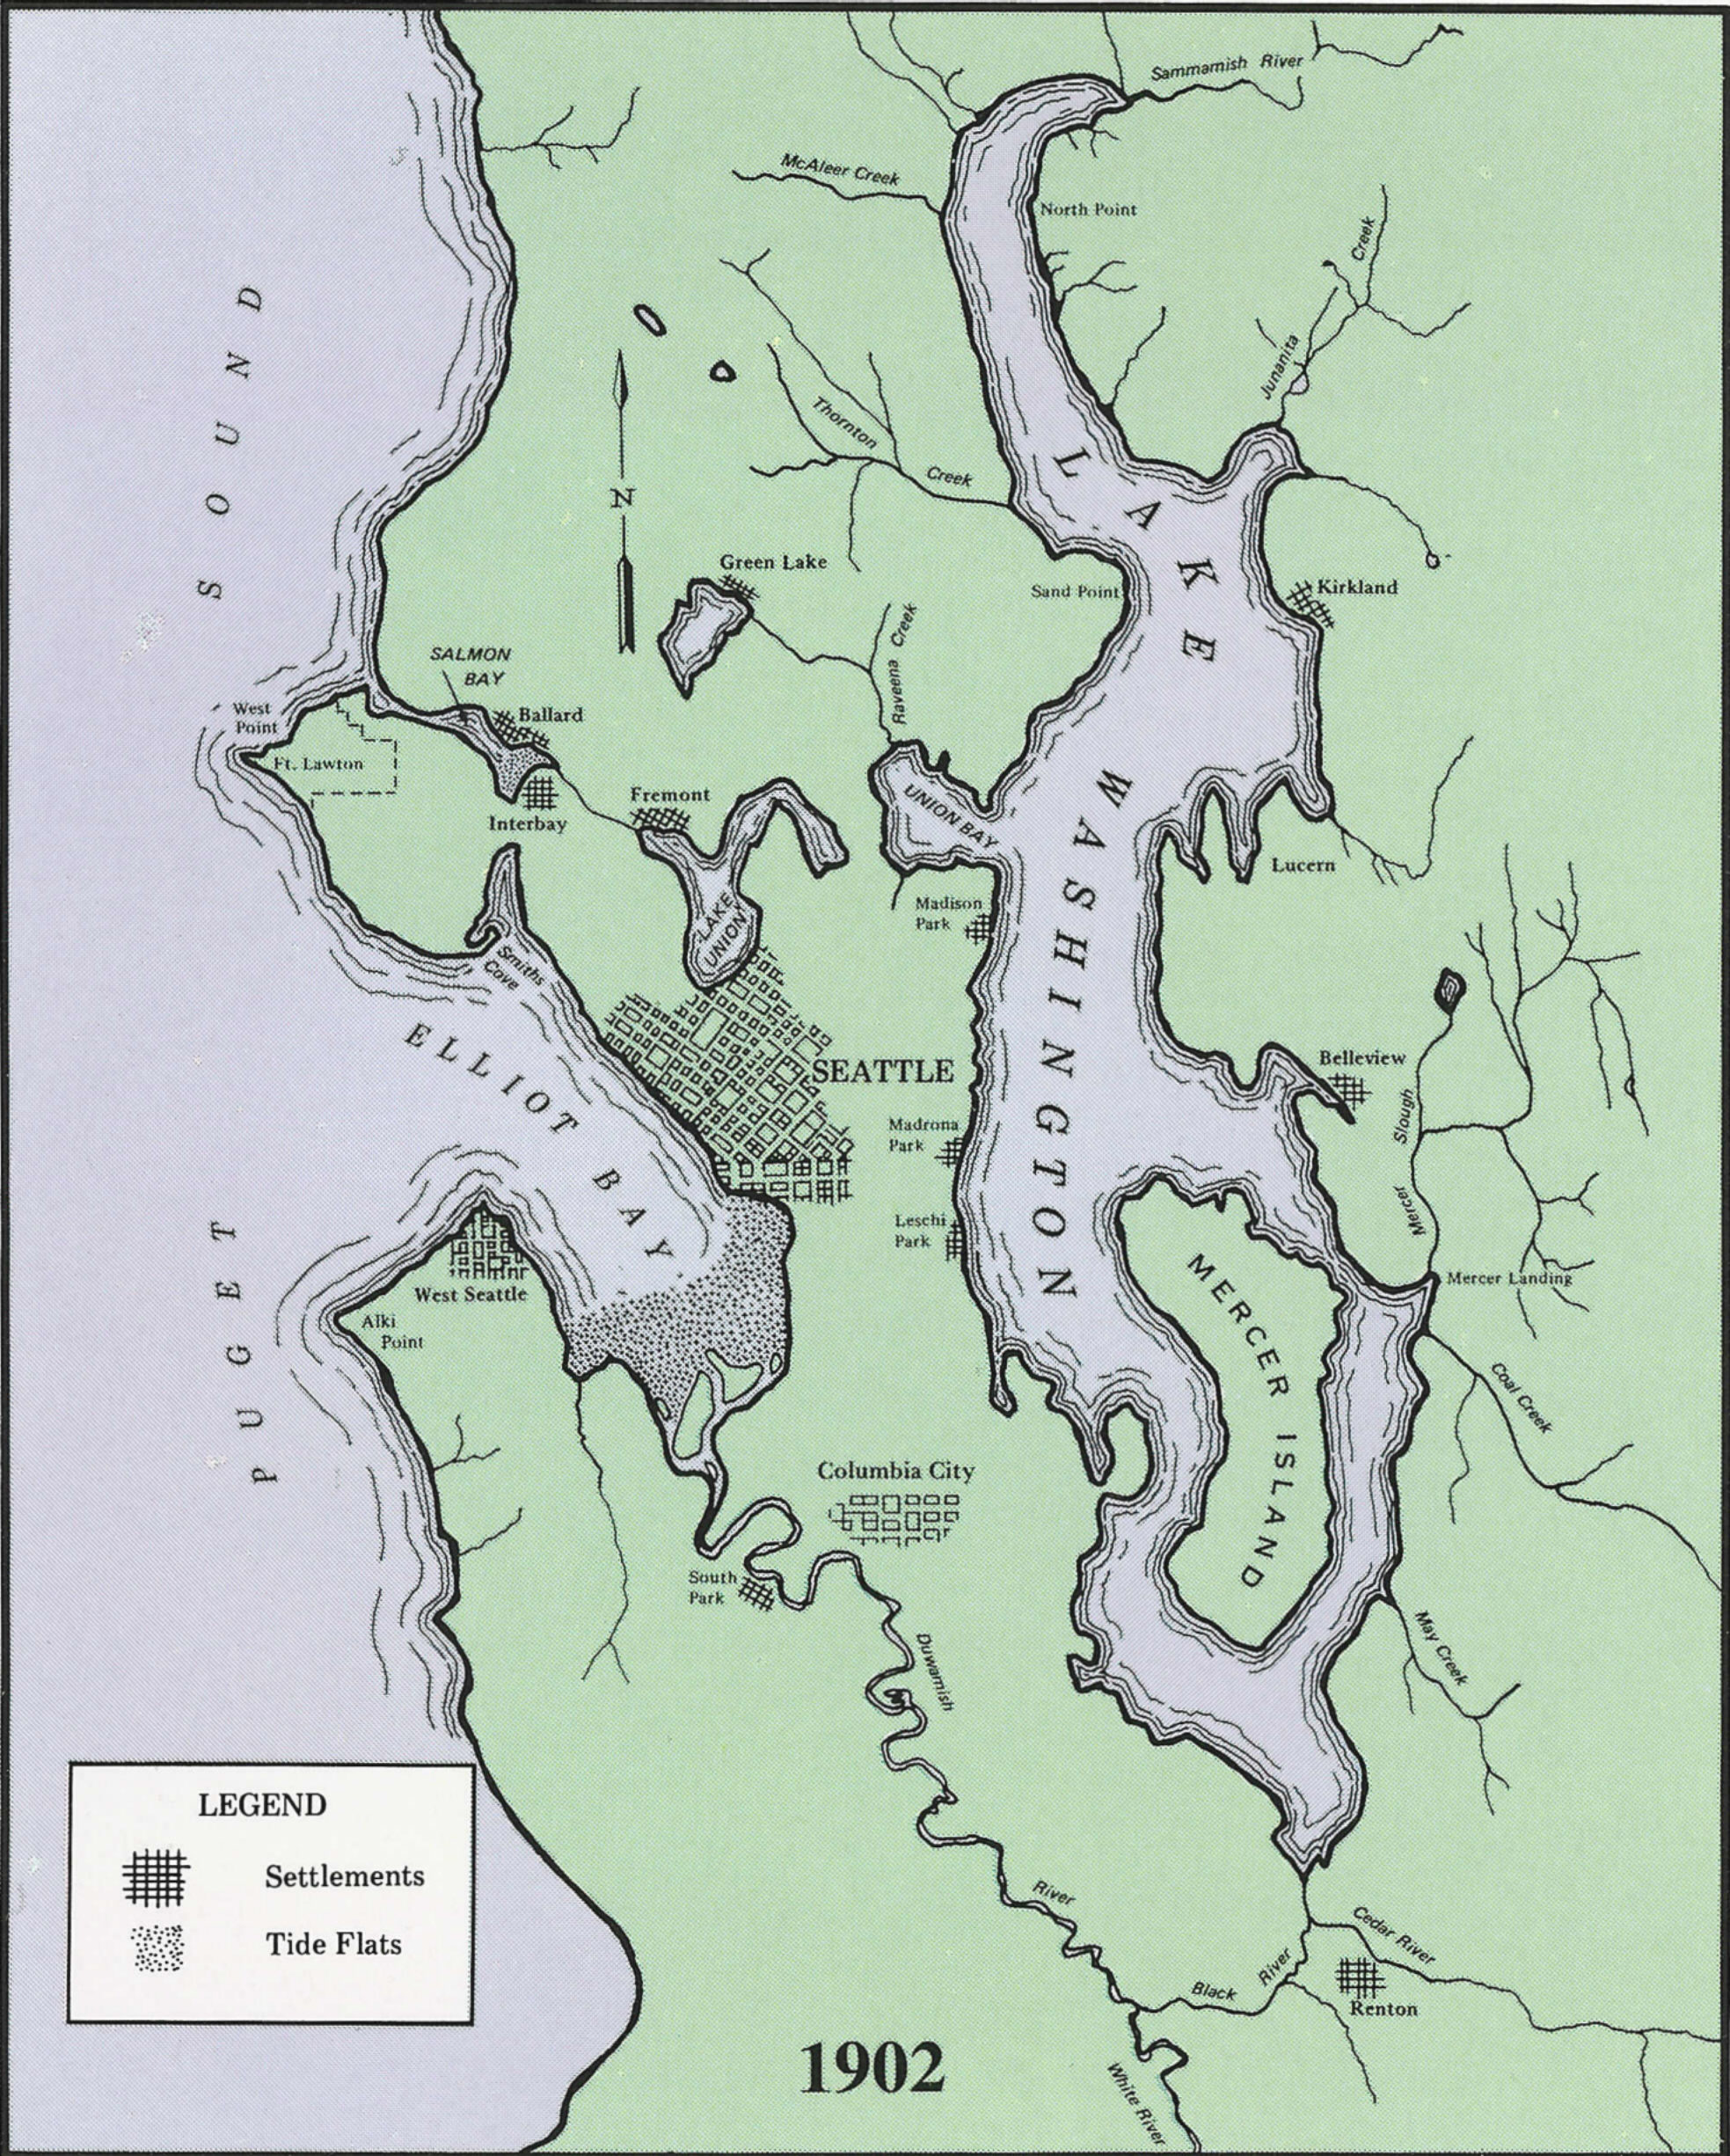 FileSeattle waterways 1902jpg Wikimedia Commons